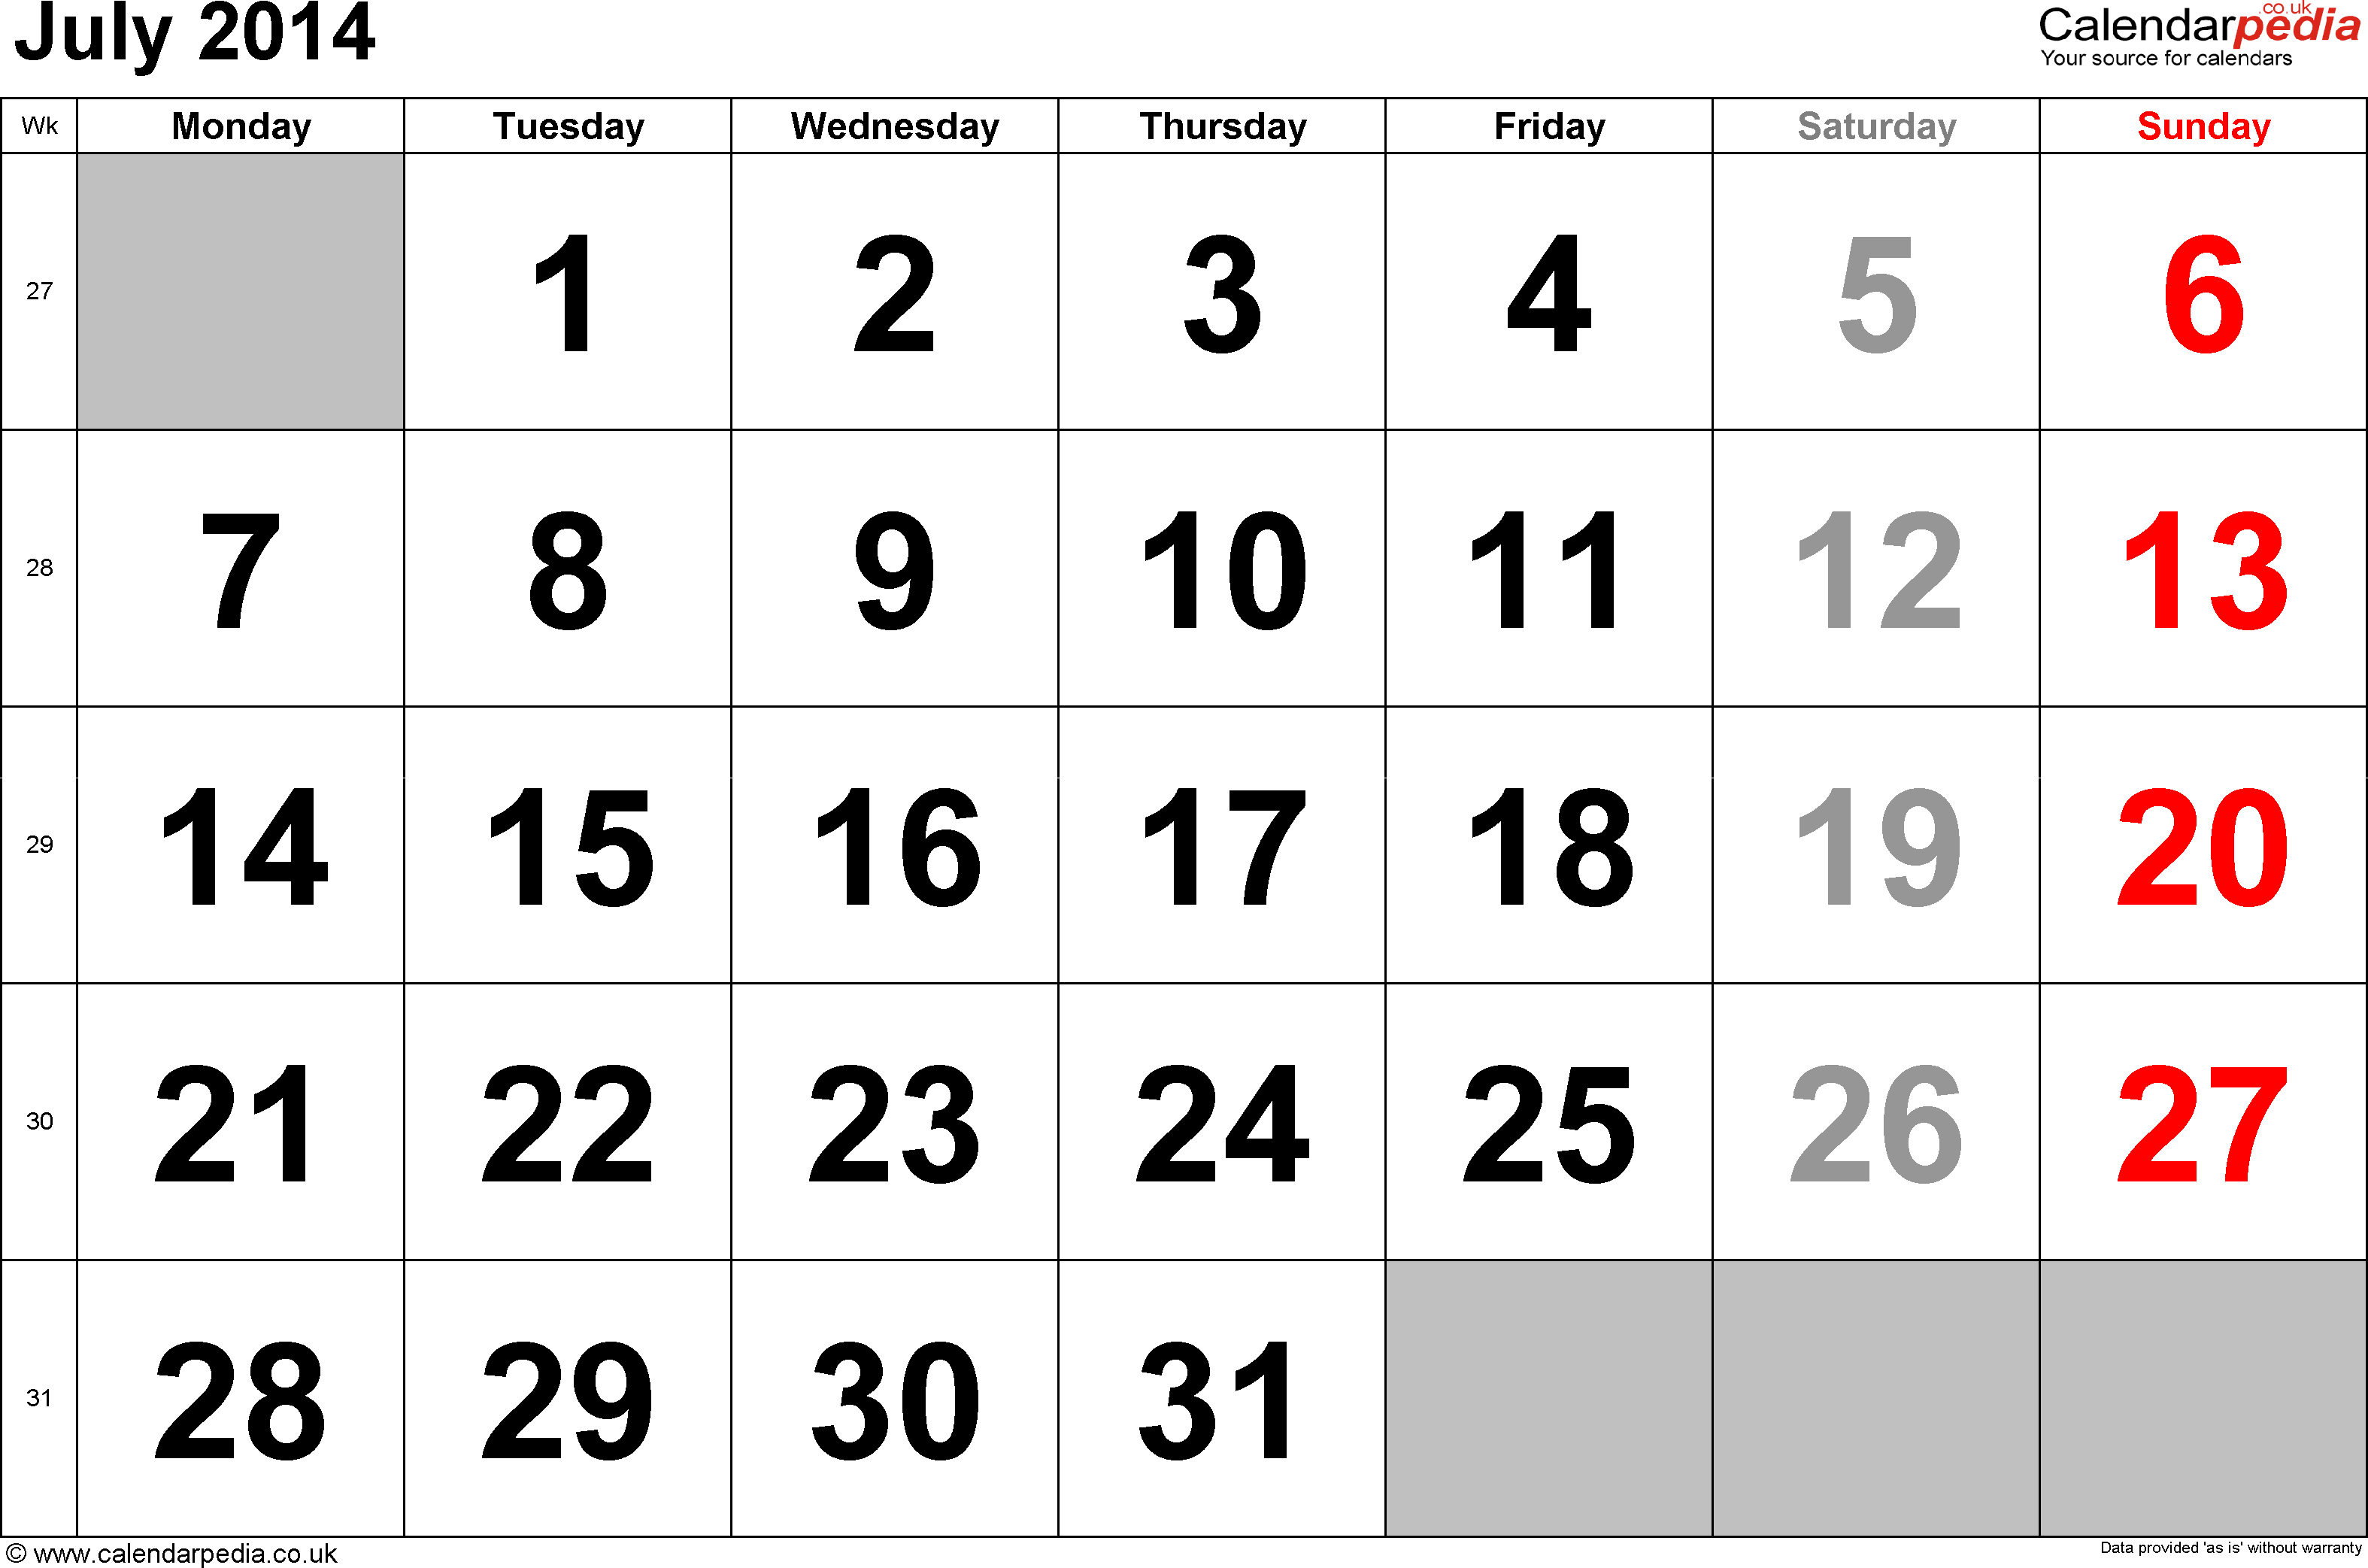 Calendar July 2014 UK, Bank Holidays, Excel/PDF/Word Templates